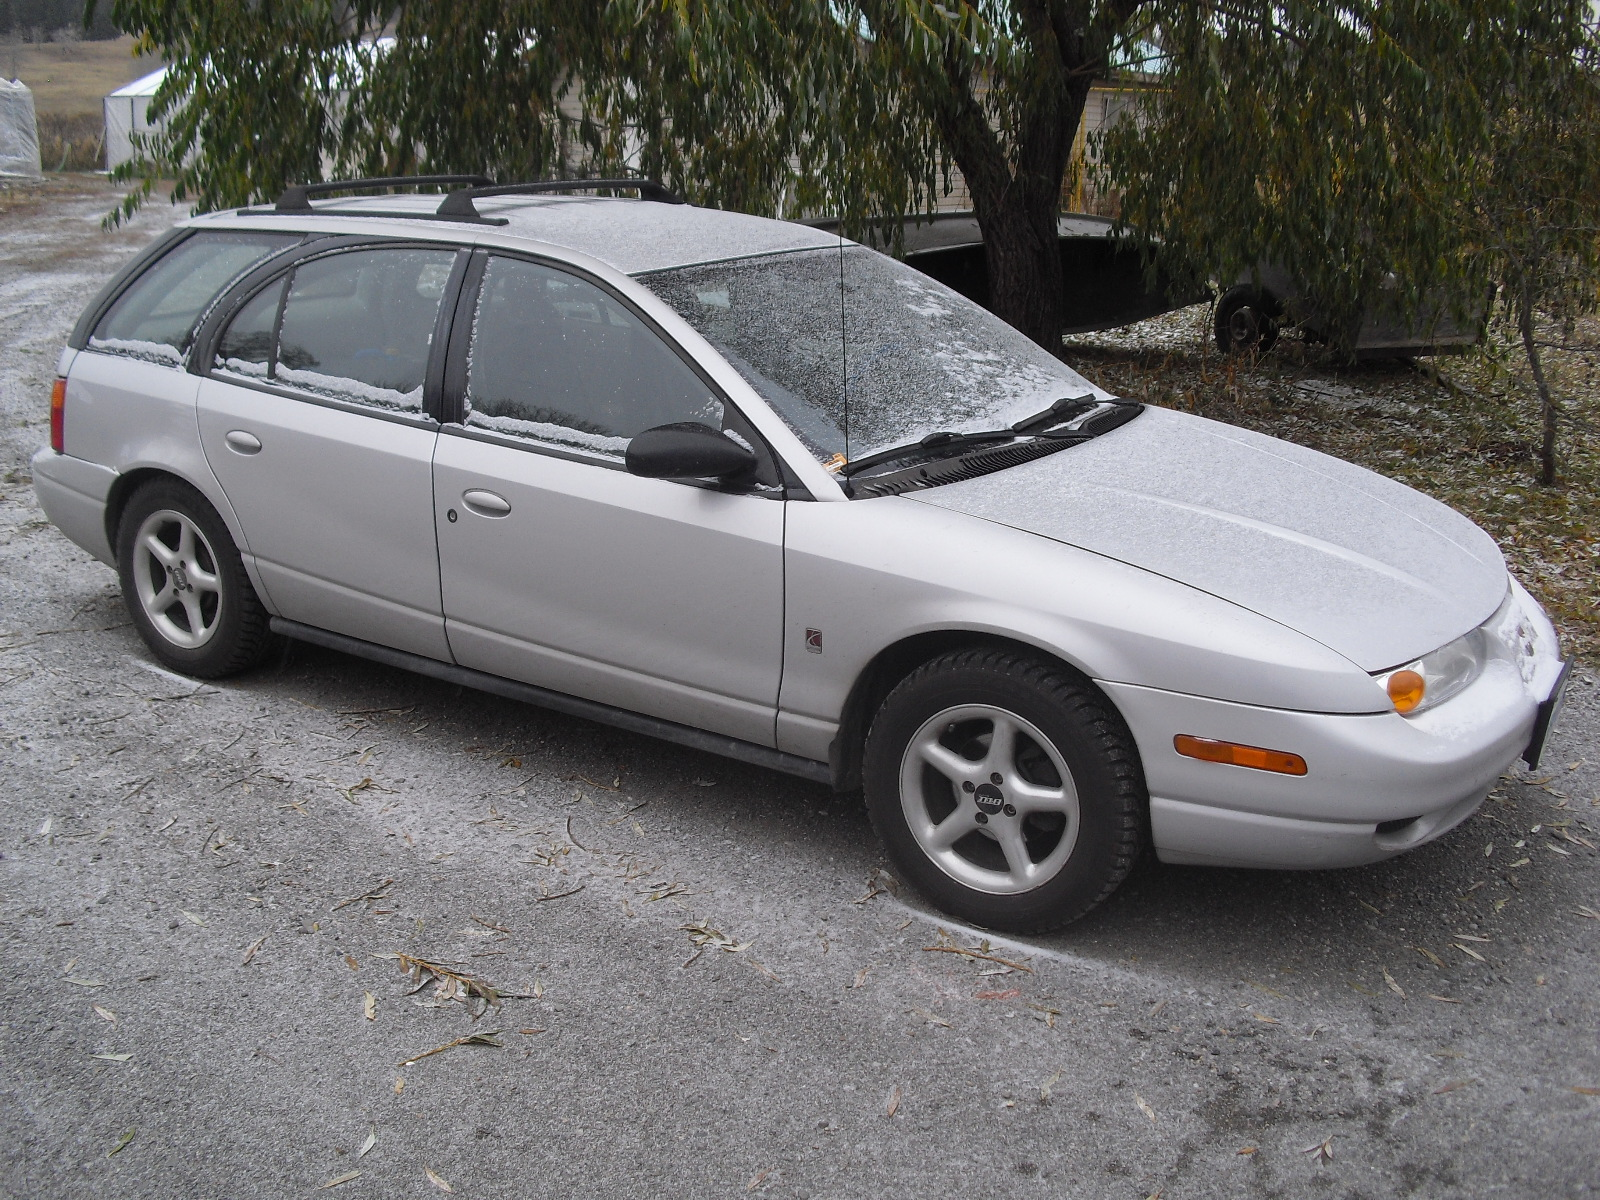 2001 Saturn S-Series 4 Dr SW2 Wagon picture, exterior